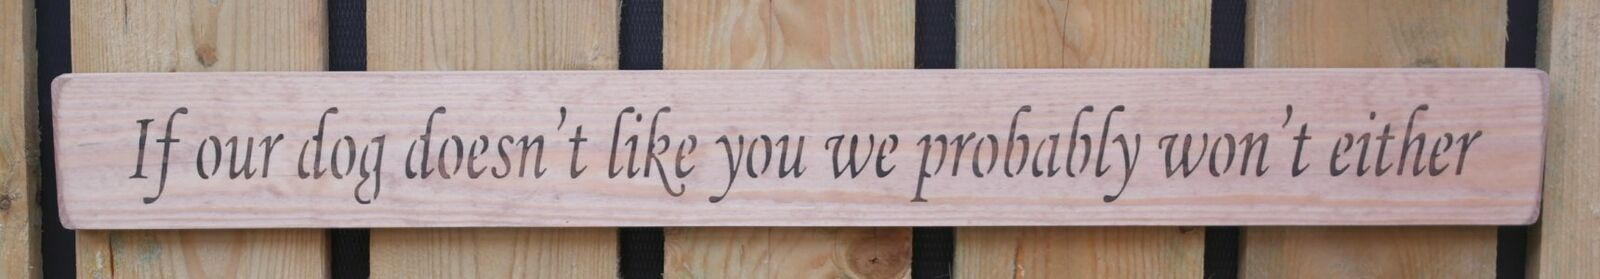 Natural finish wooden sign If our dog doesnt like you we probably wont either